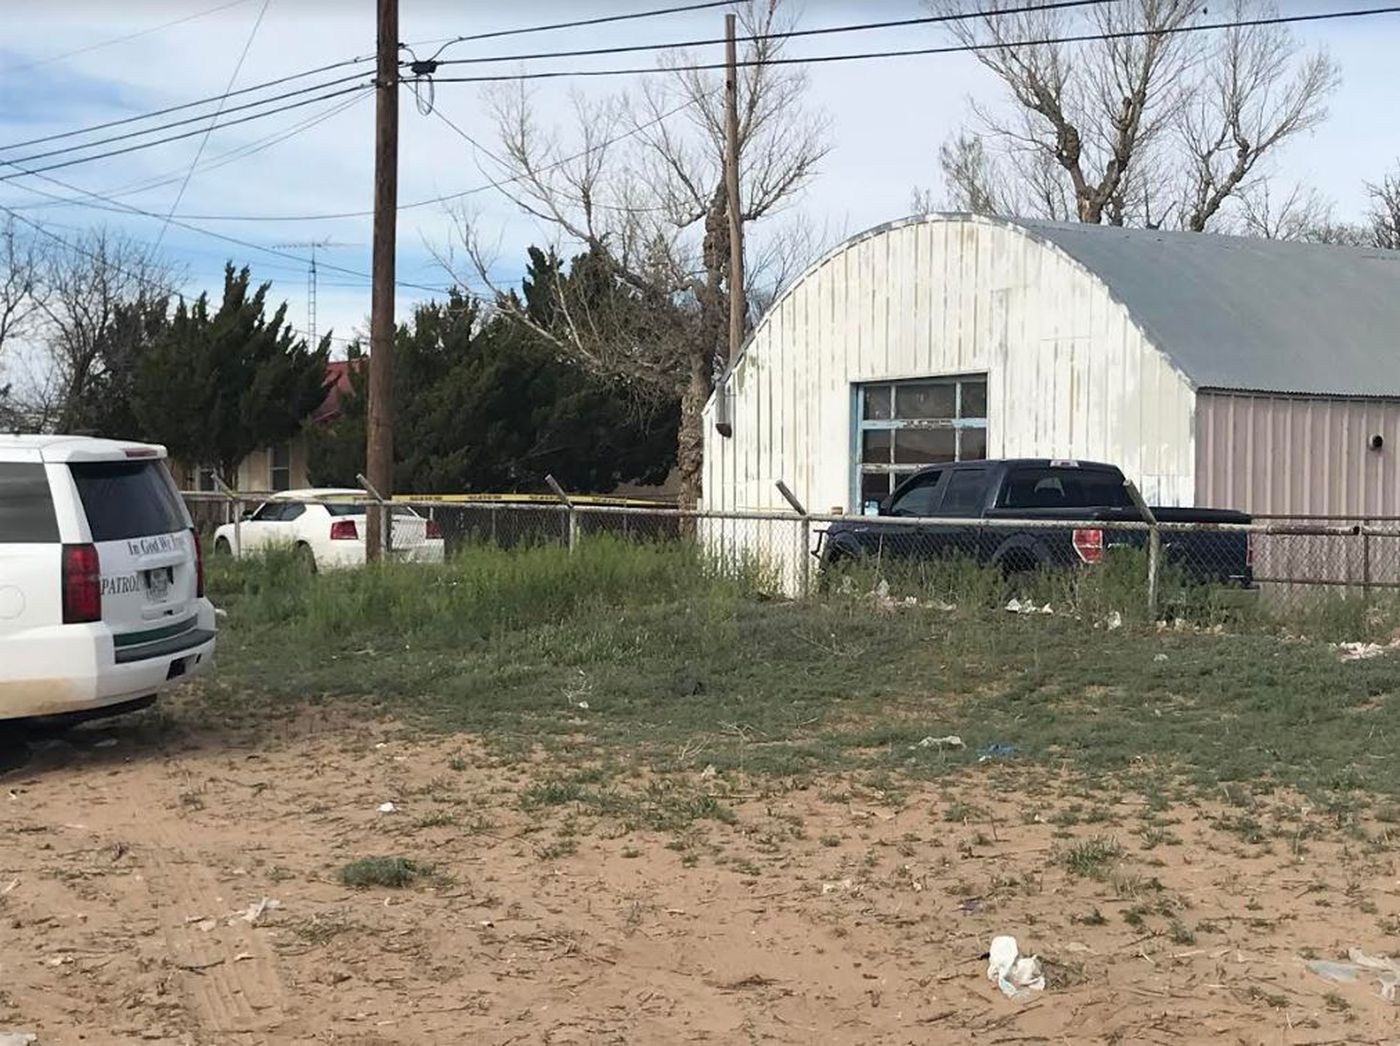 1 Dead After Officer Involved Shooting In Dalhart